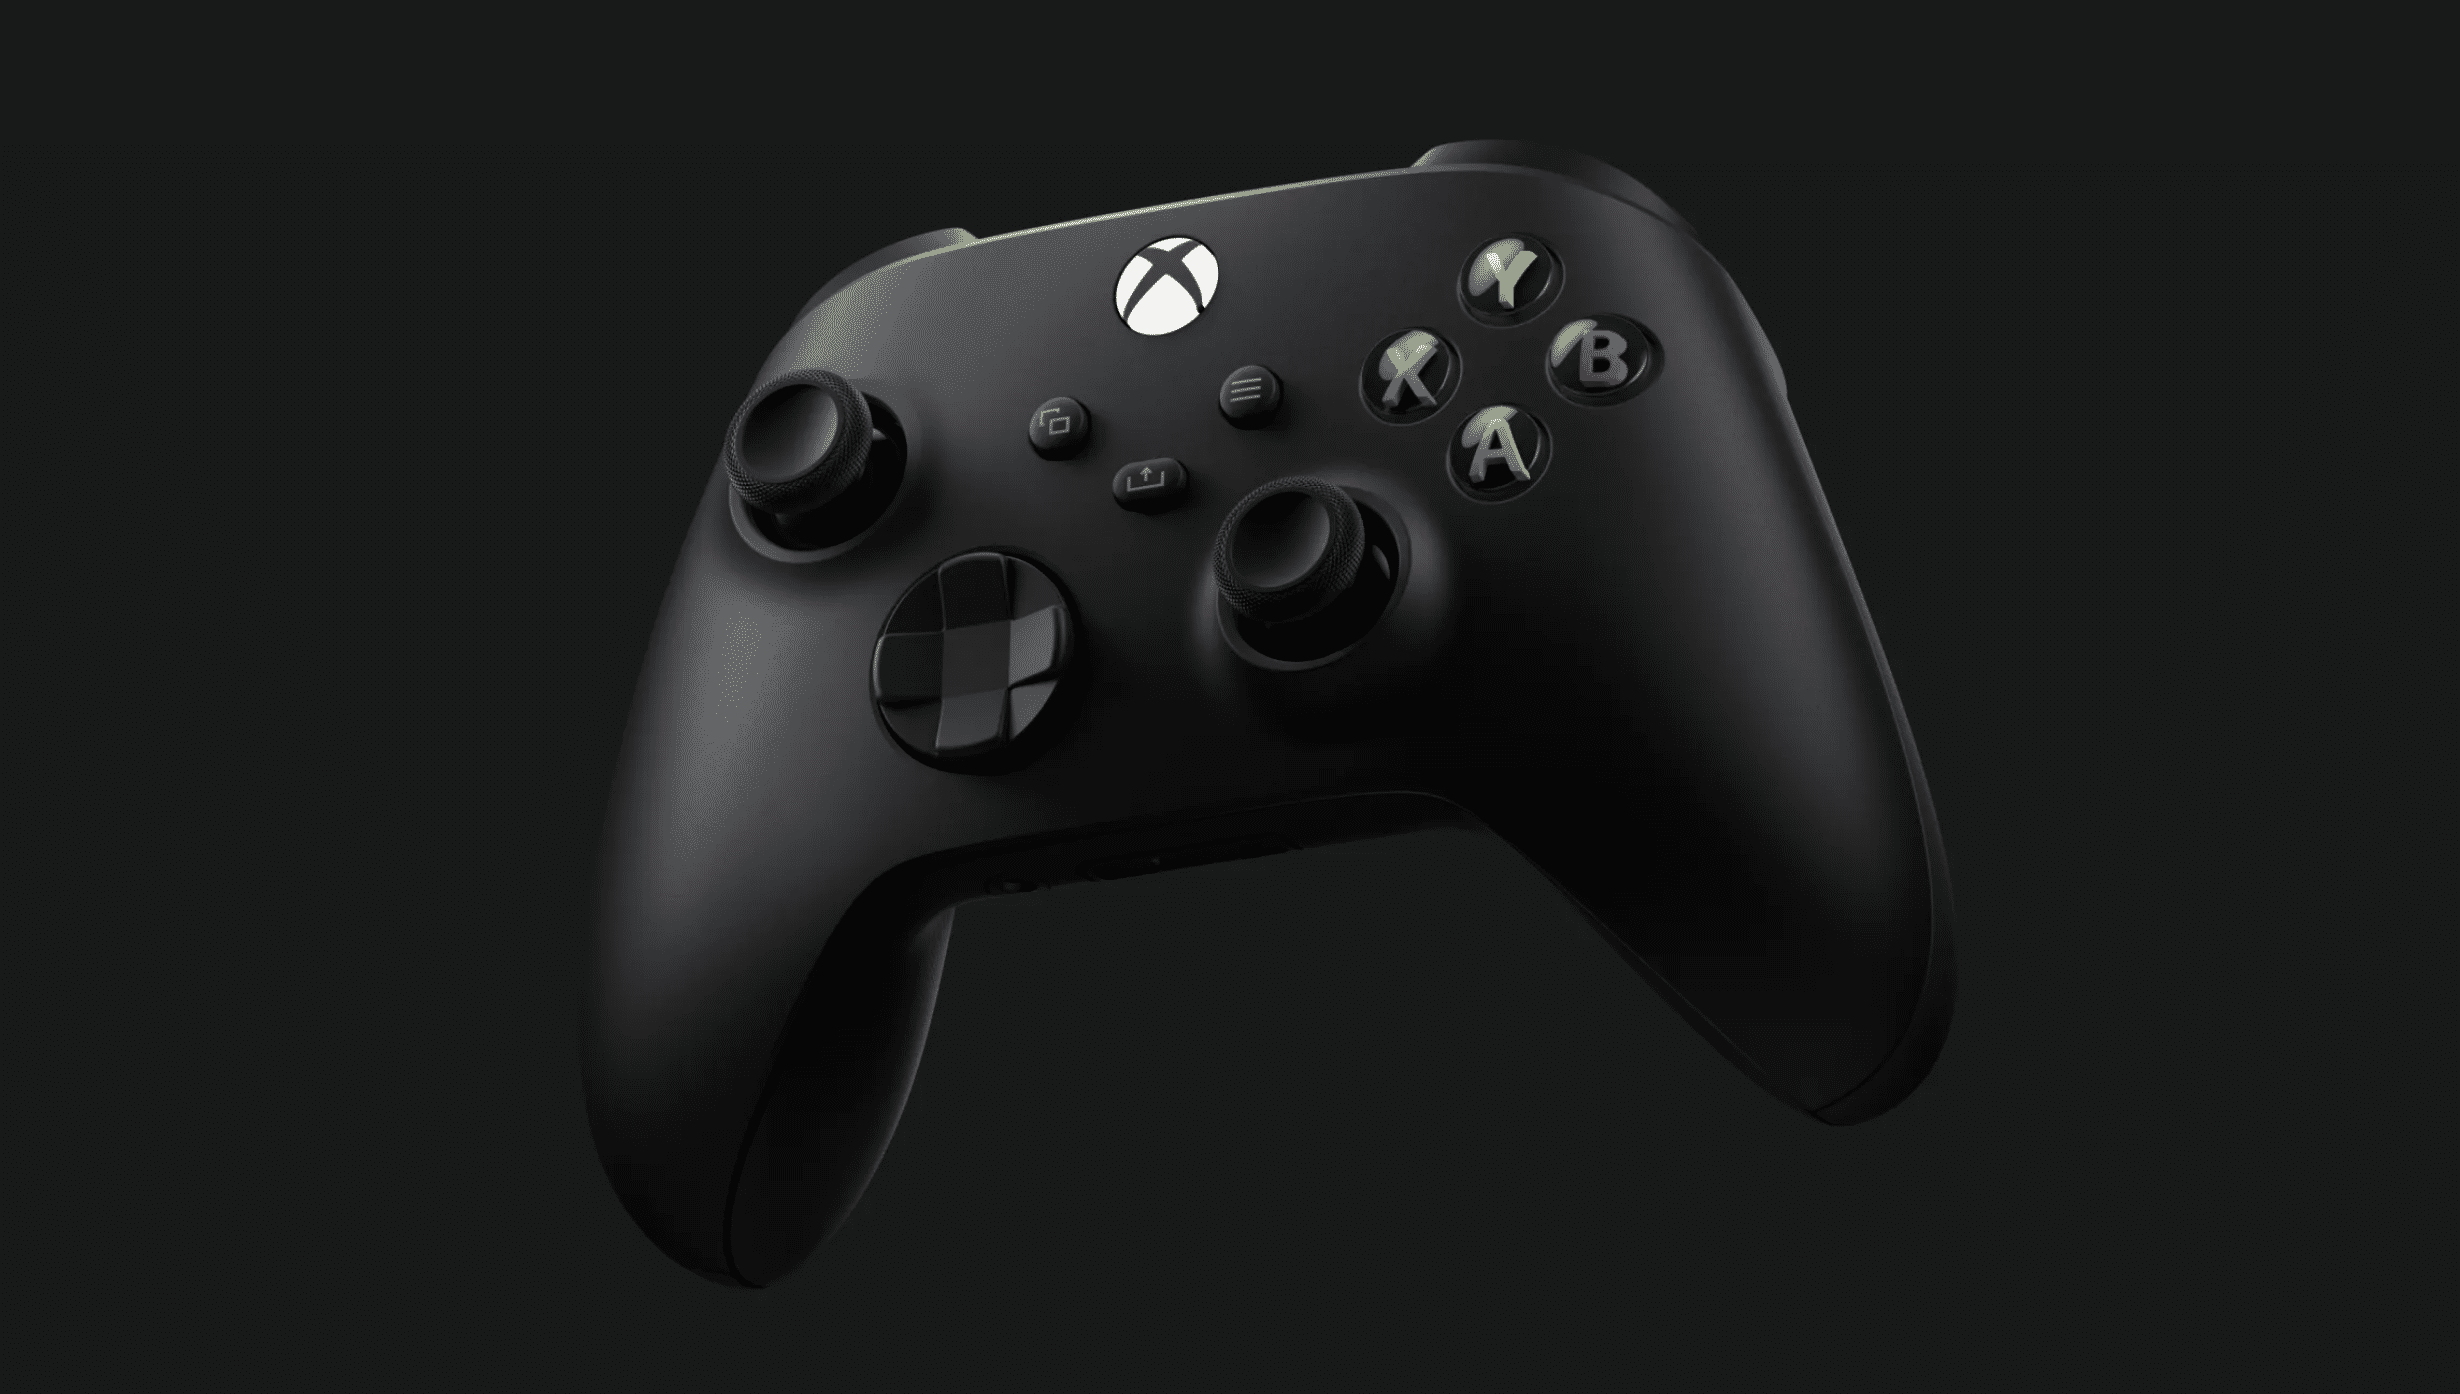 Apple working to bring Xbox Series X controller support to iOS, Mac